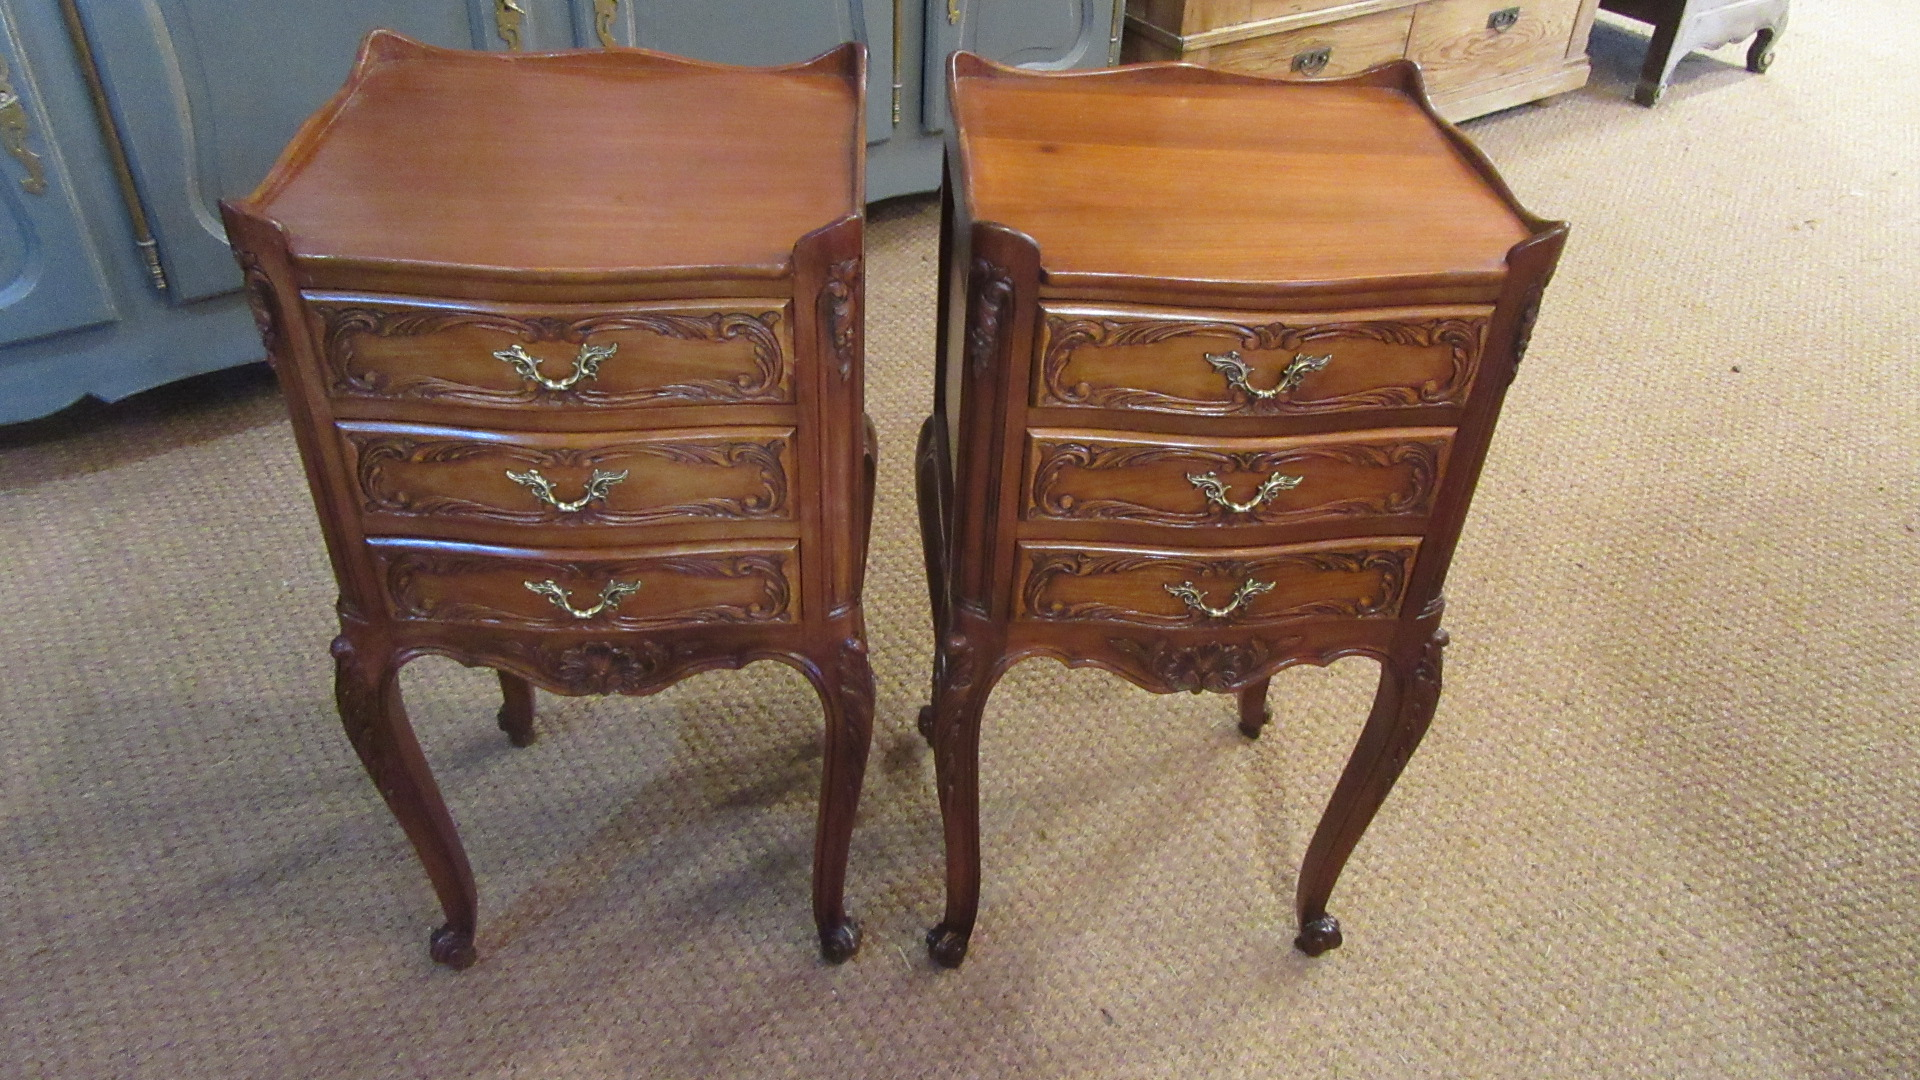 PAIR OF VINTAGE FRENCH CHERRY WOOD BEDSIDE CHESTS